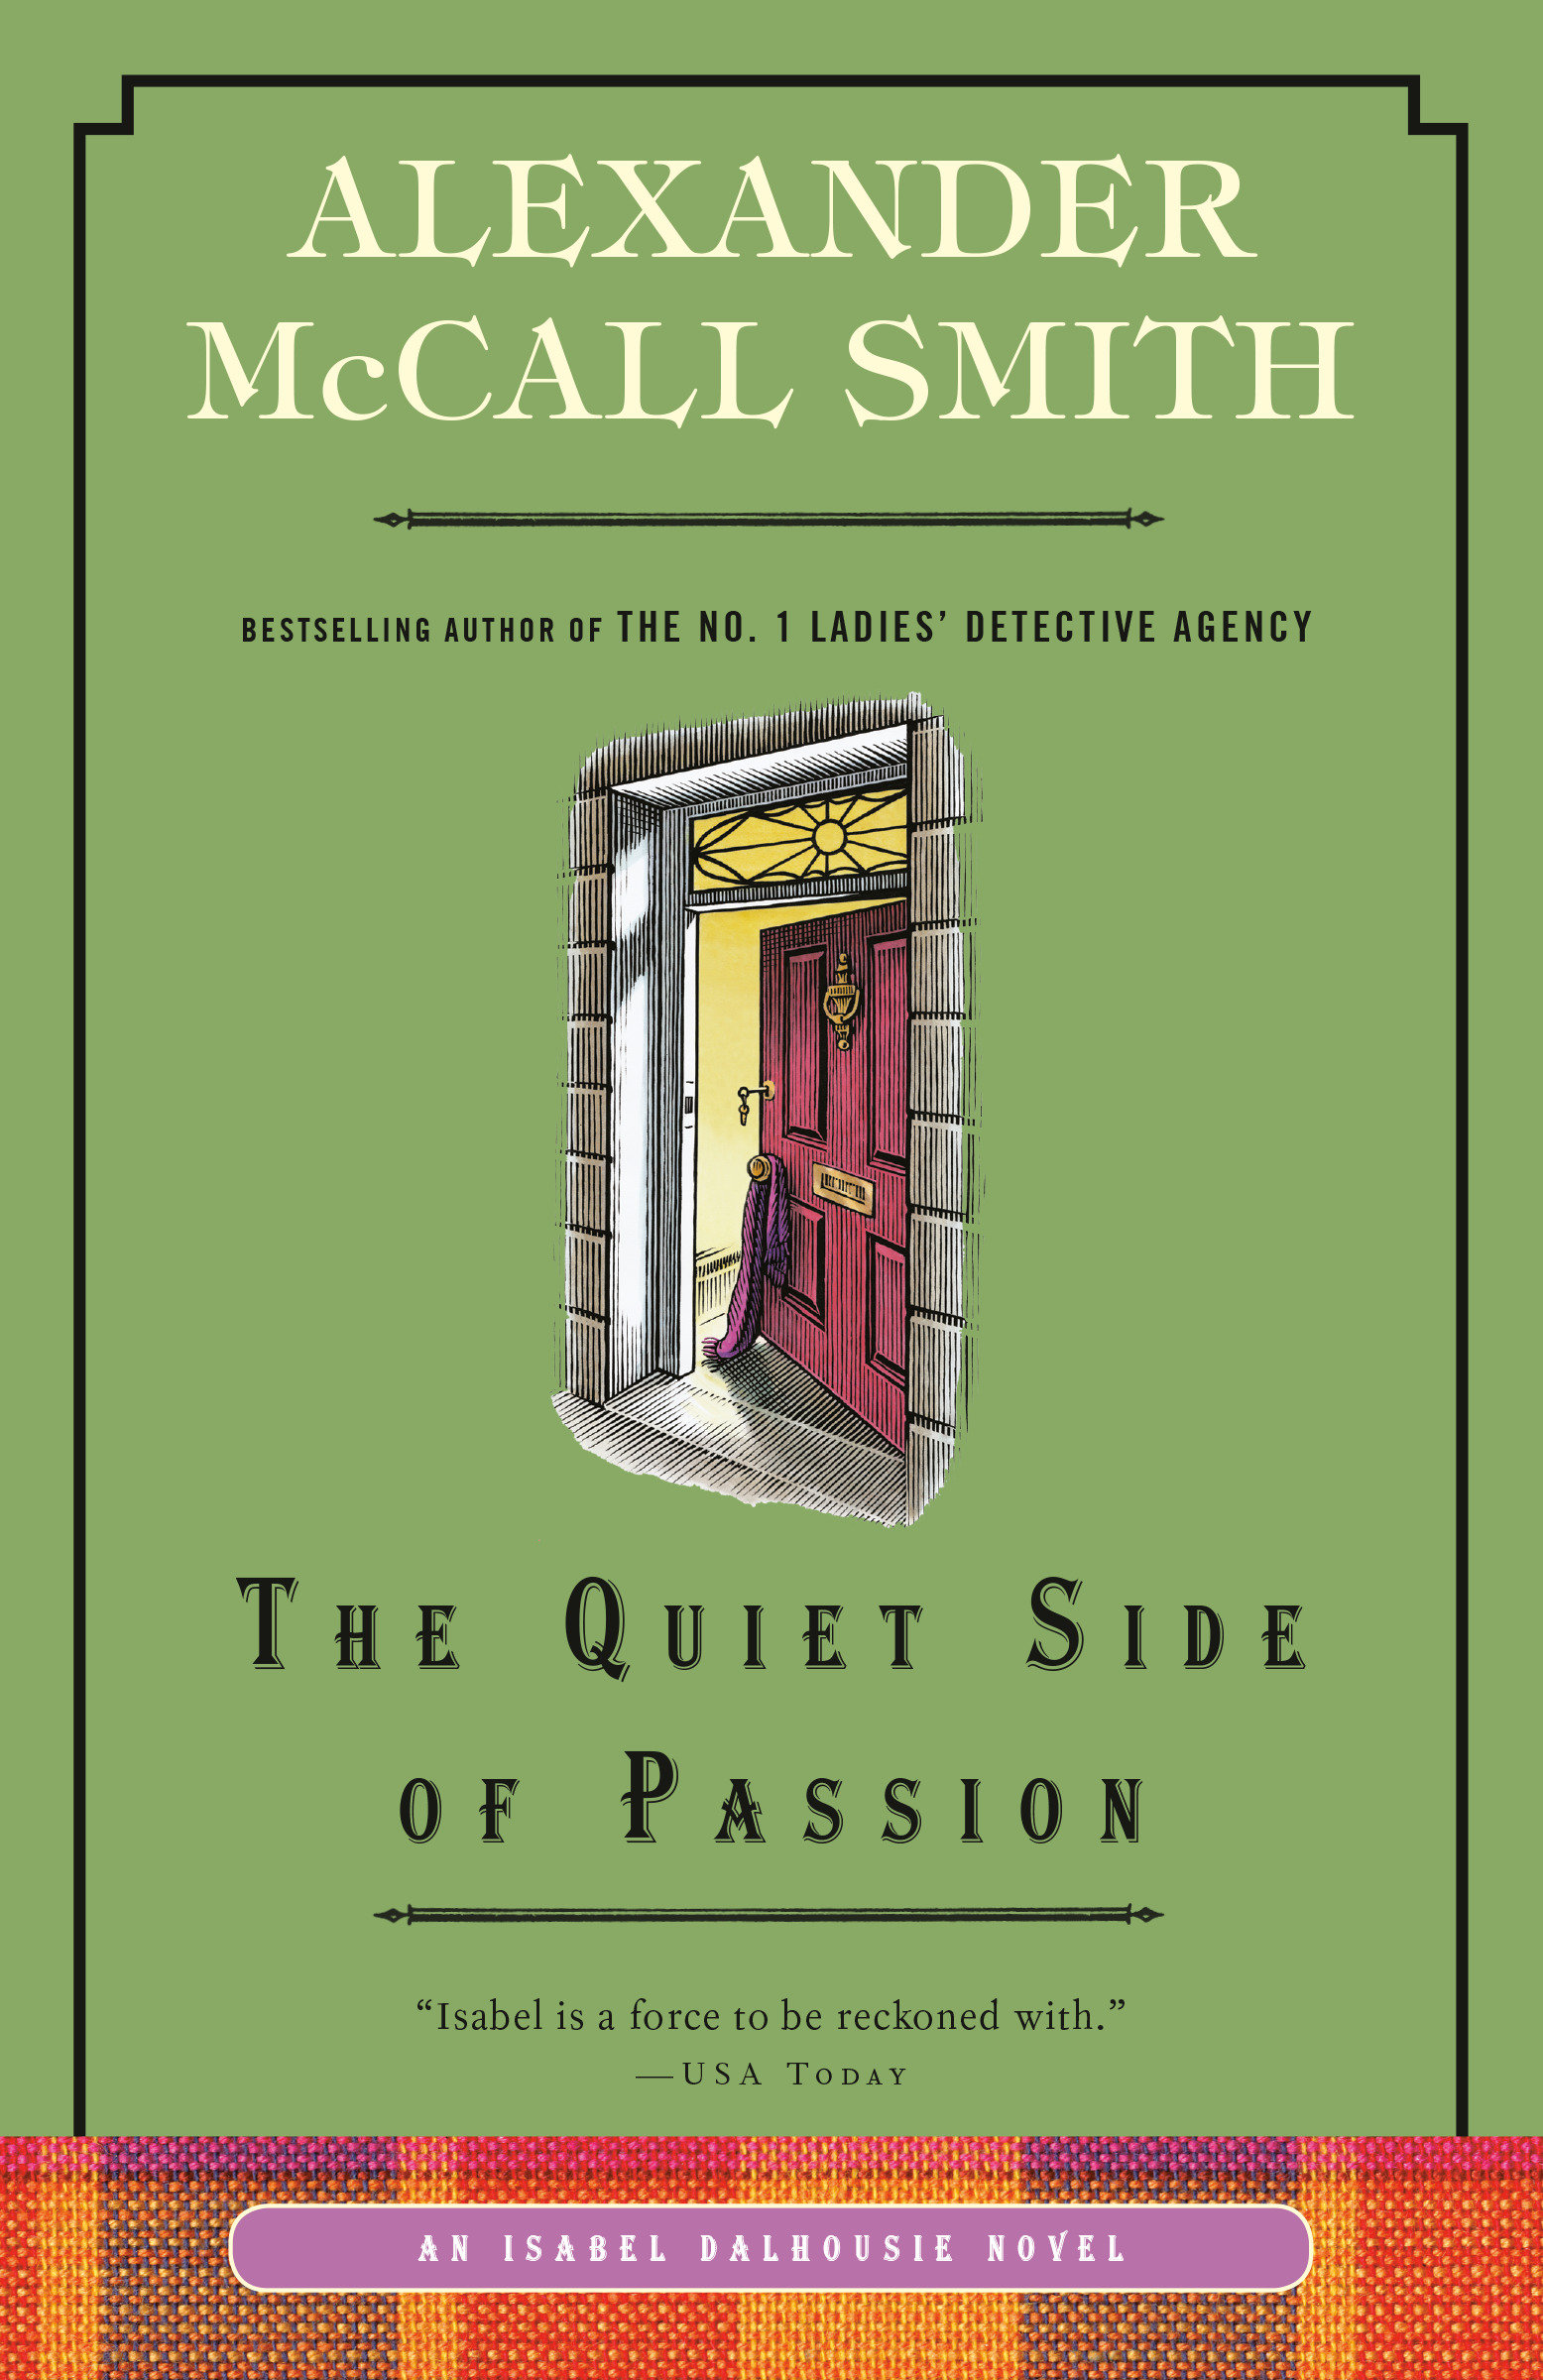 The Quiet Side of Passion An Isabel Dalhousie Novel (12)